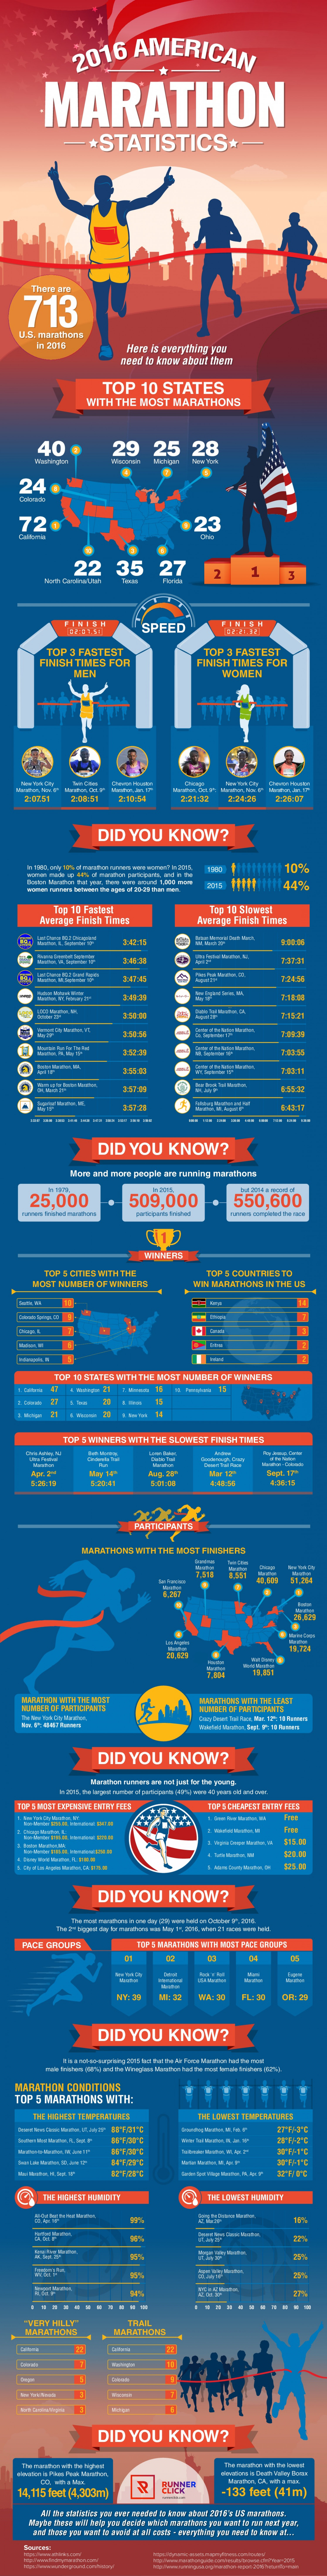 All you need to know about US Marathons in 2016 Infographic